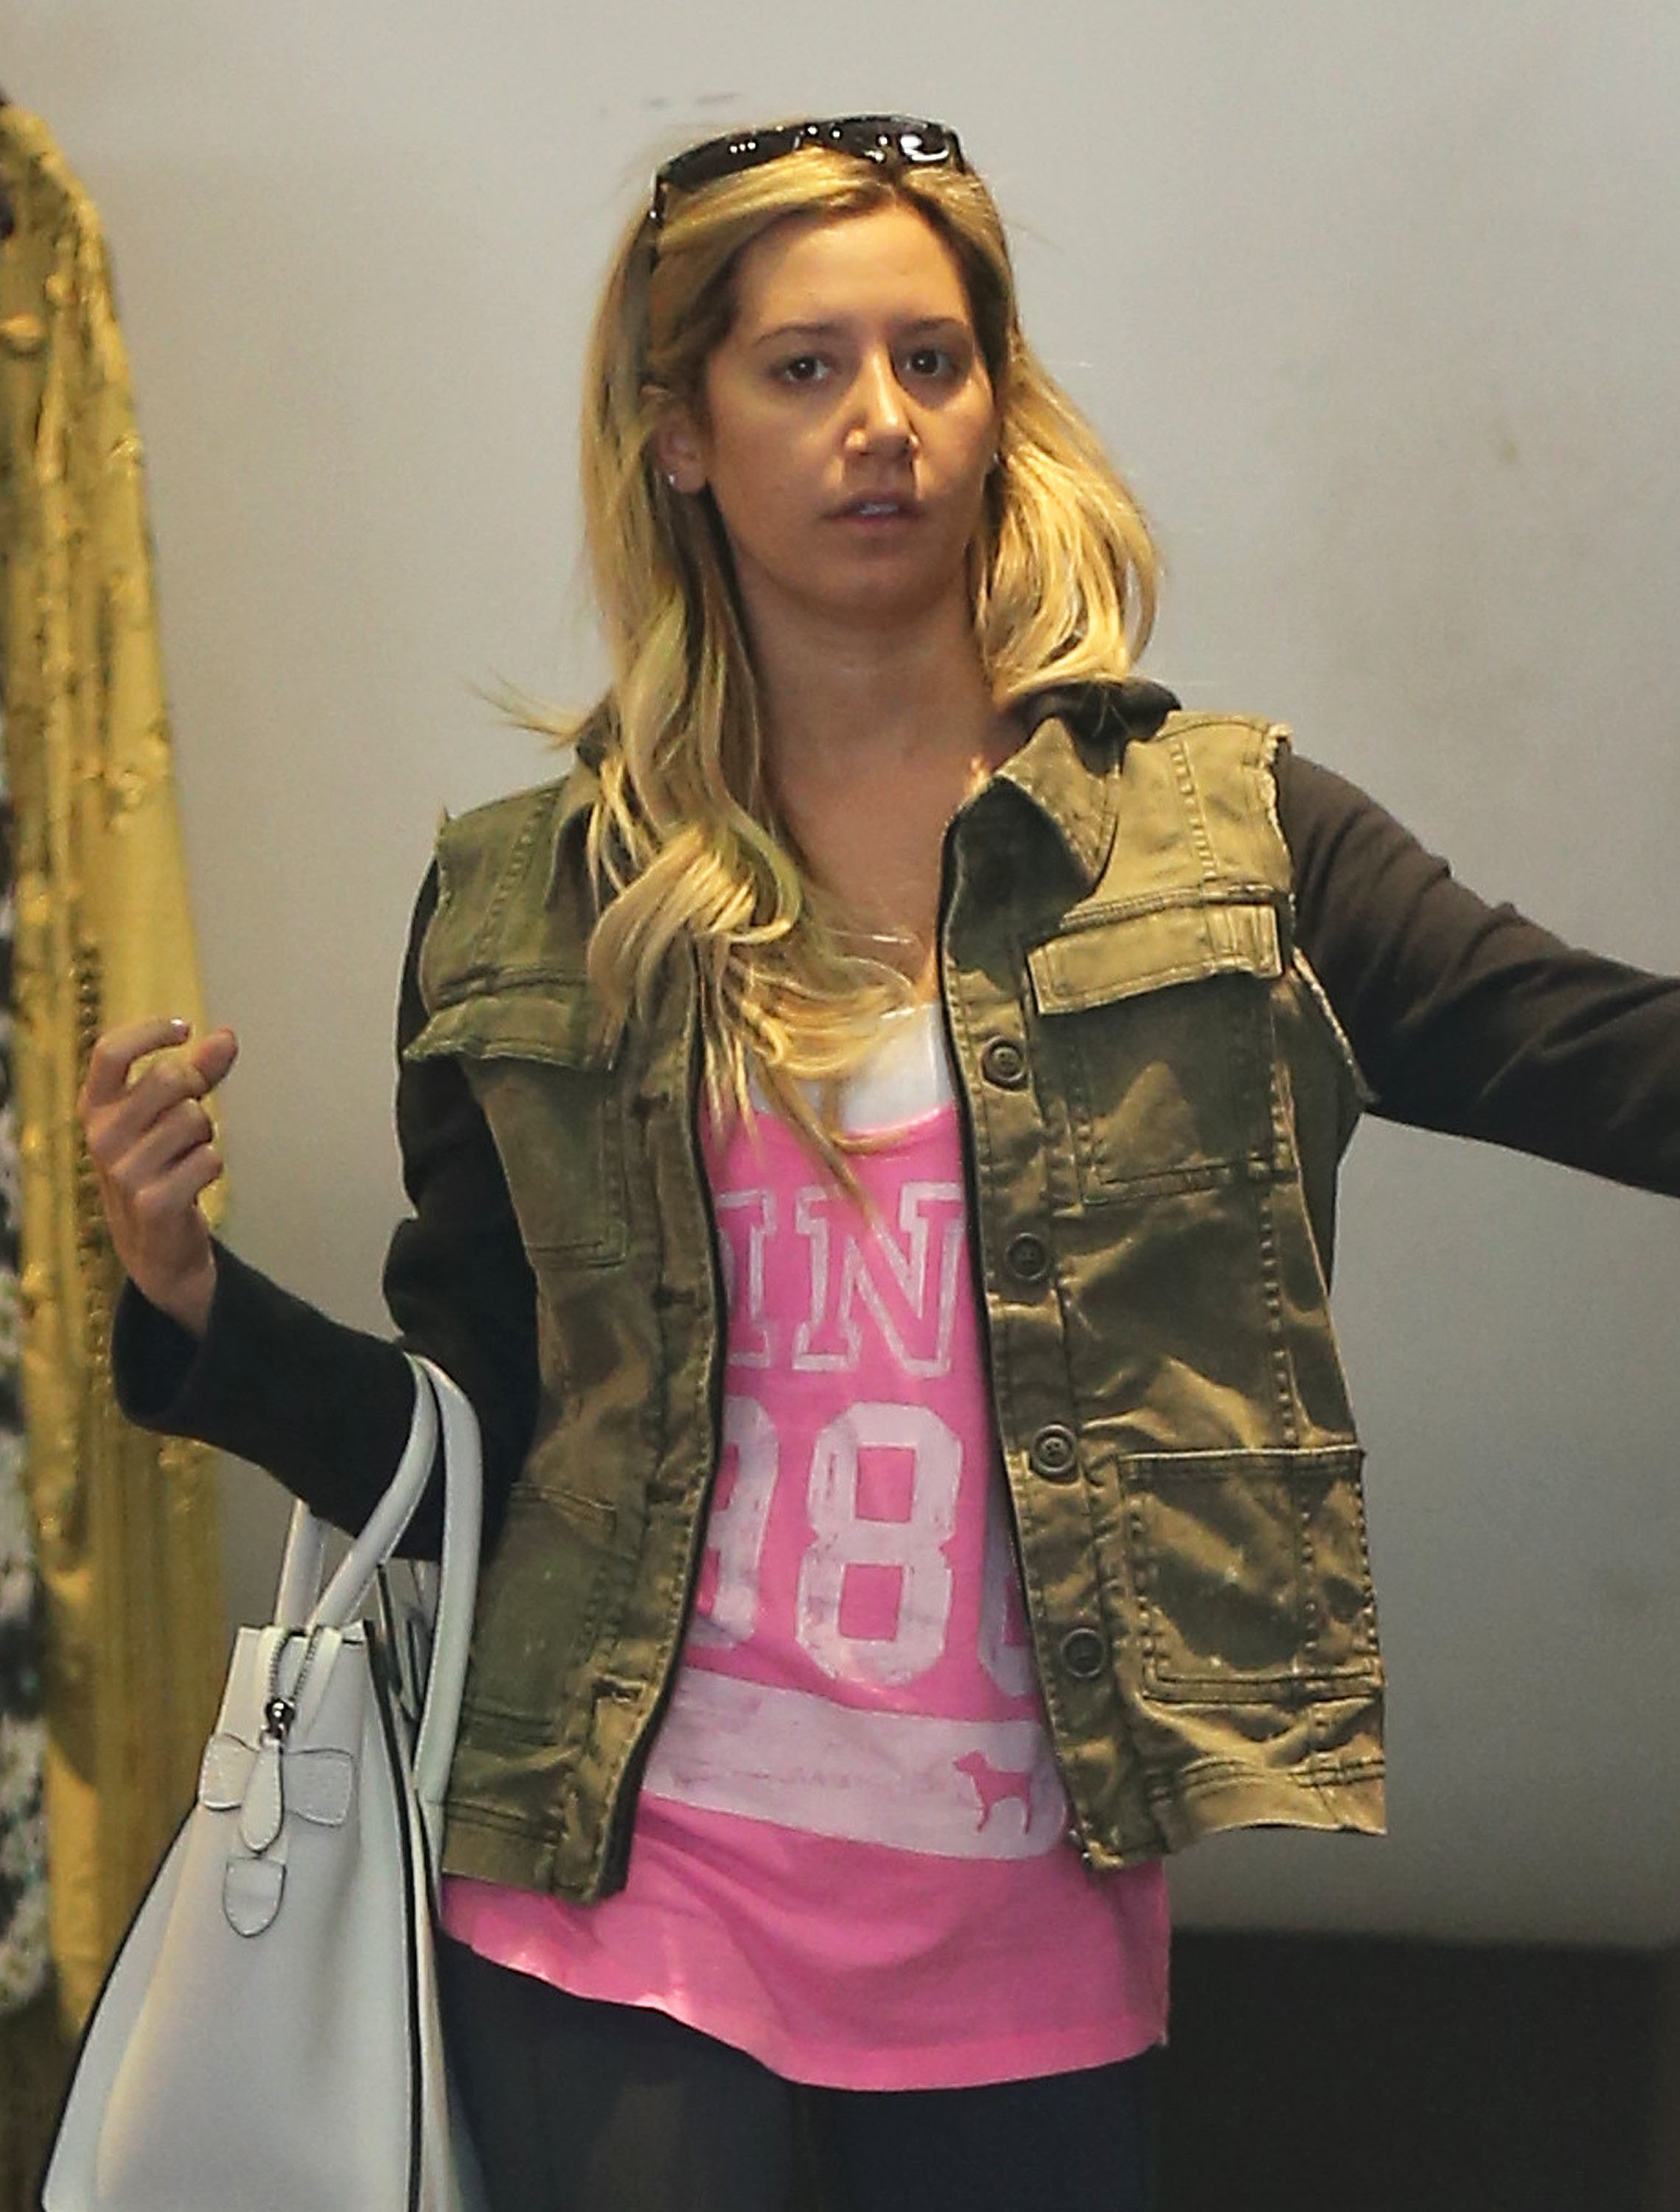 Ashley tisdale pink shirt without makeup